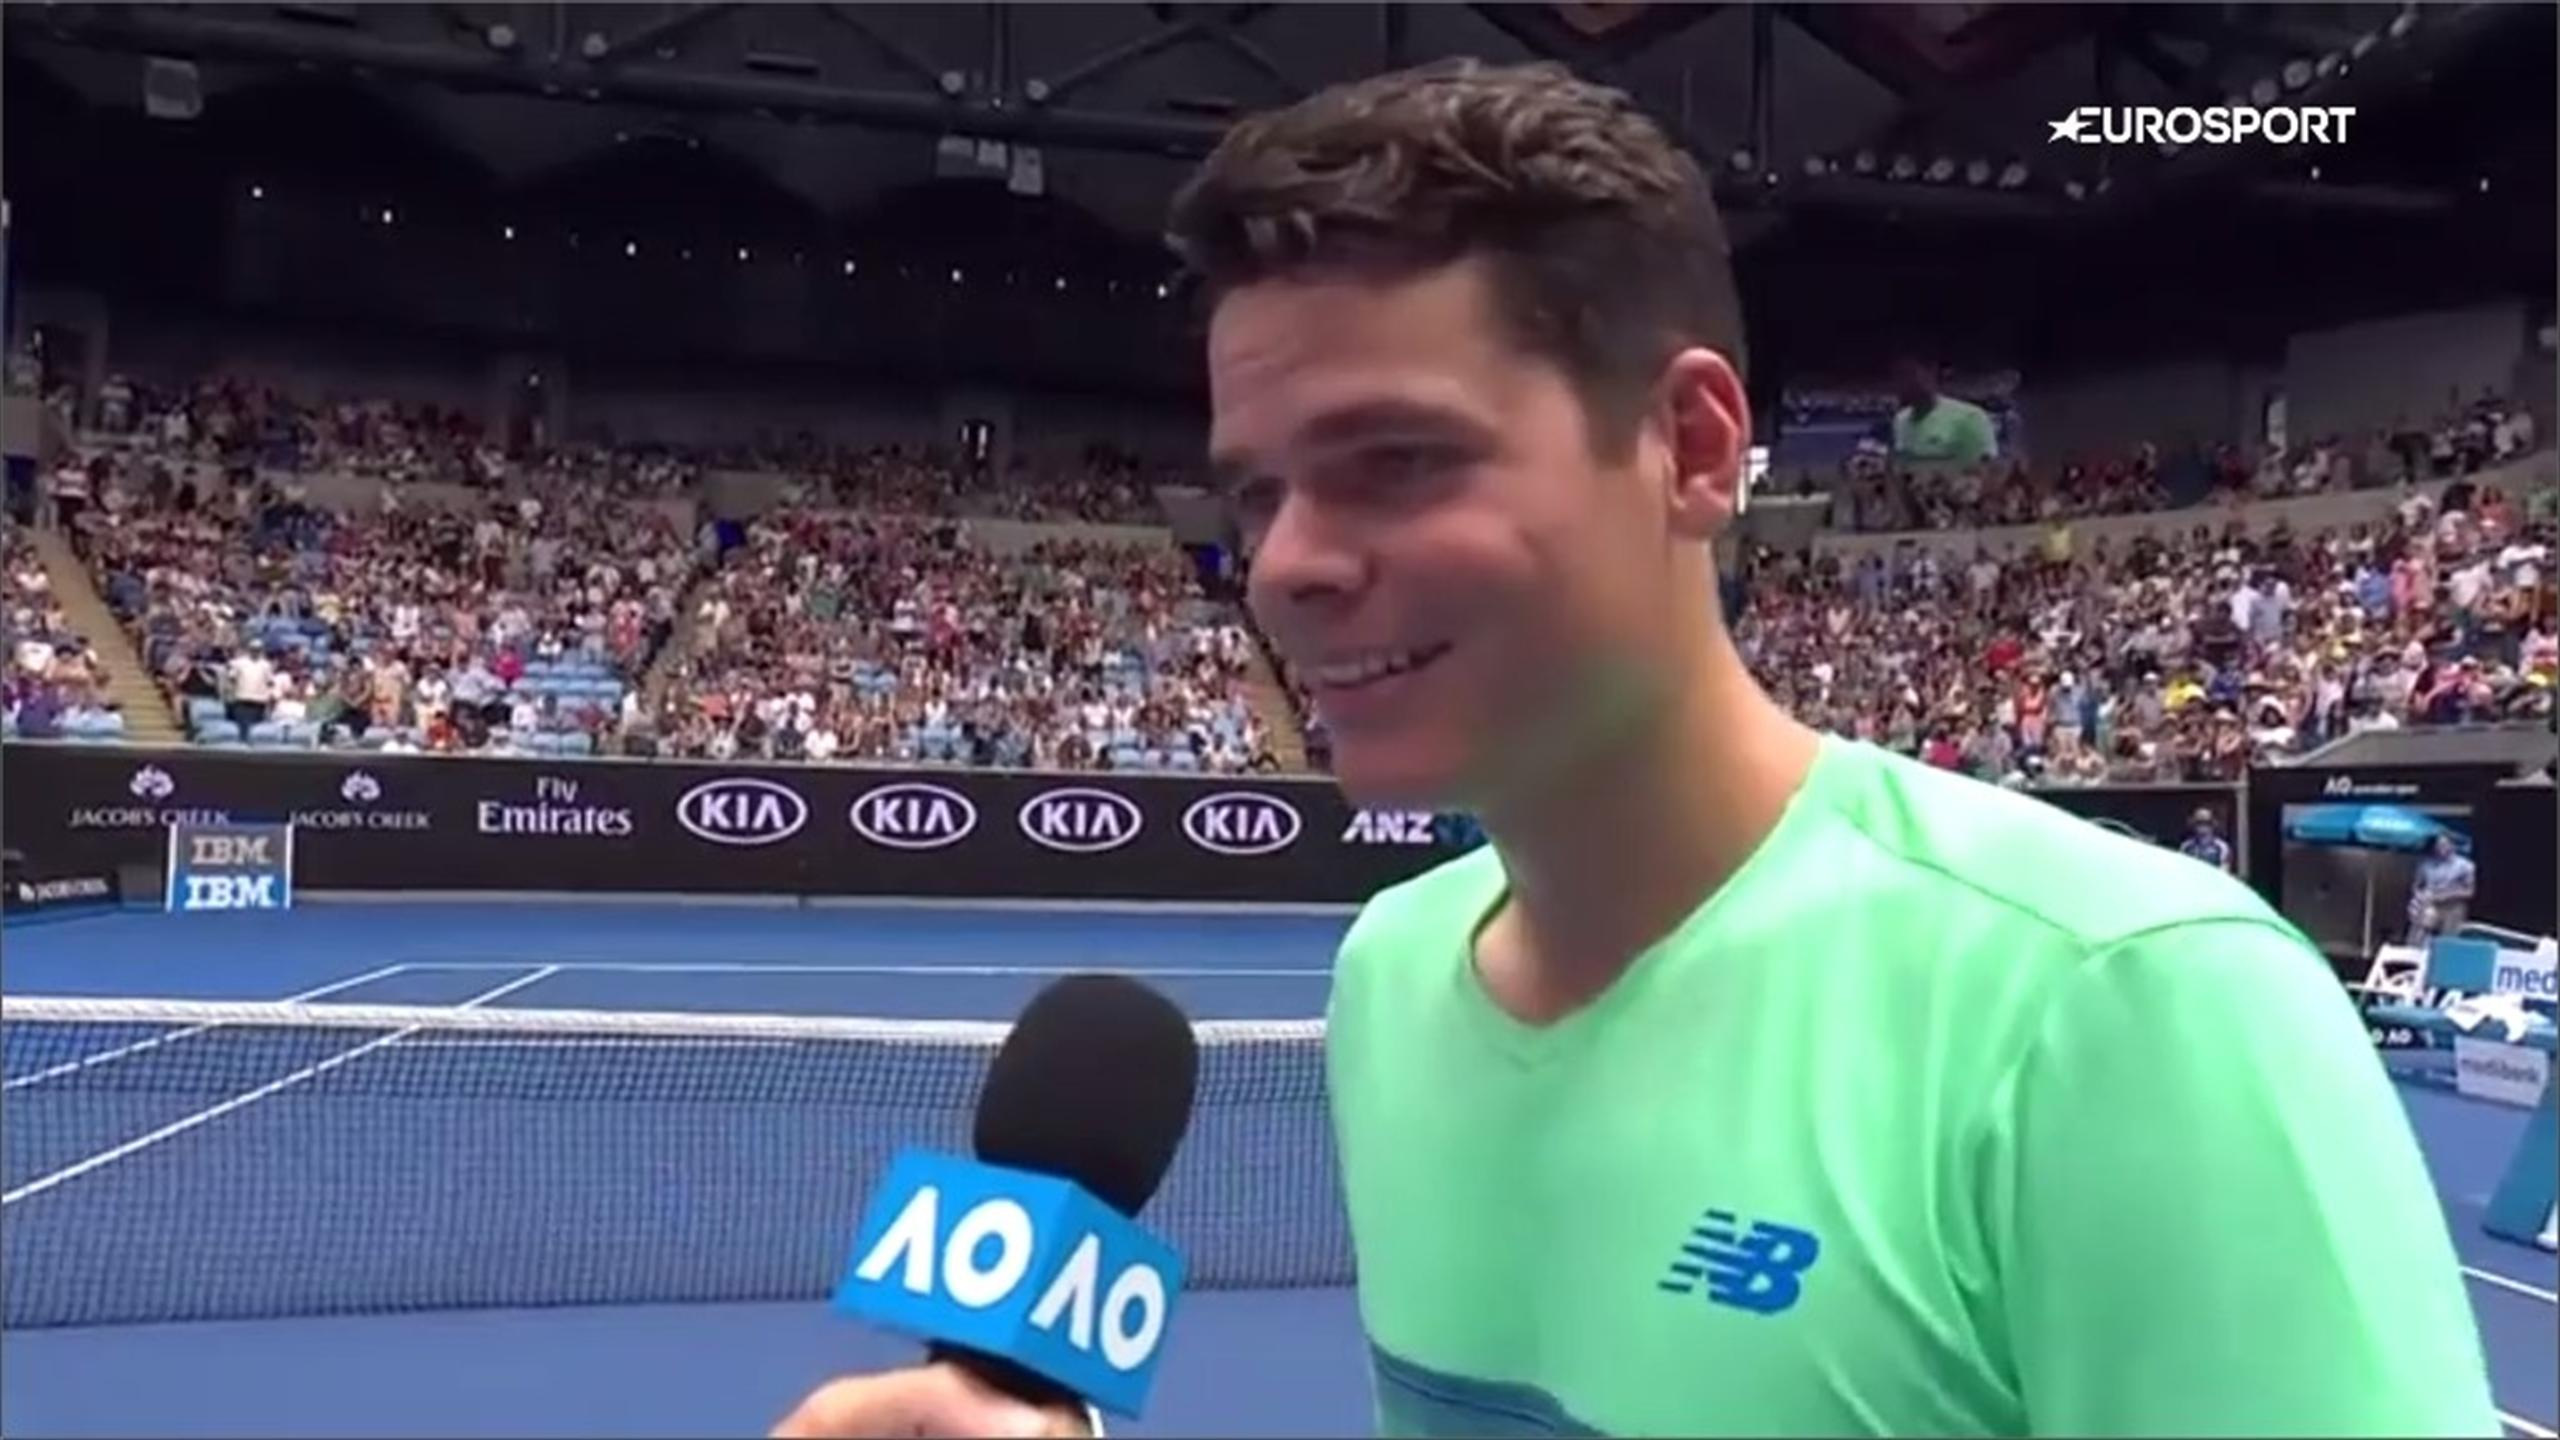 Milos Raonic jokes during his post-match interview